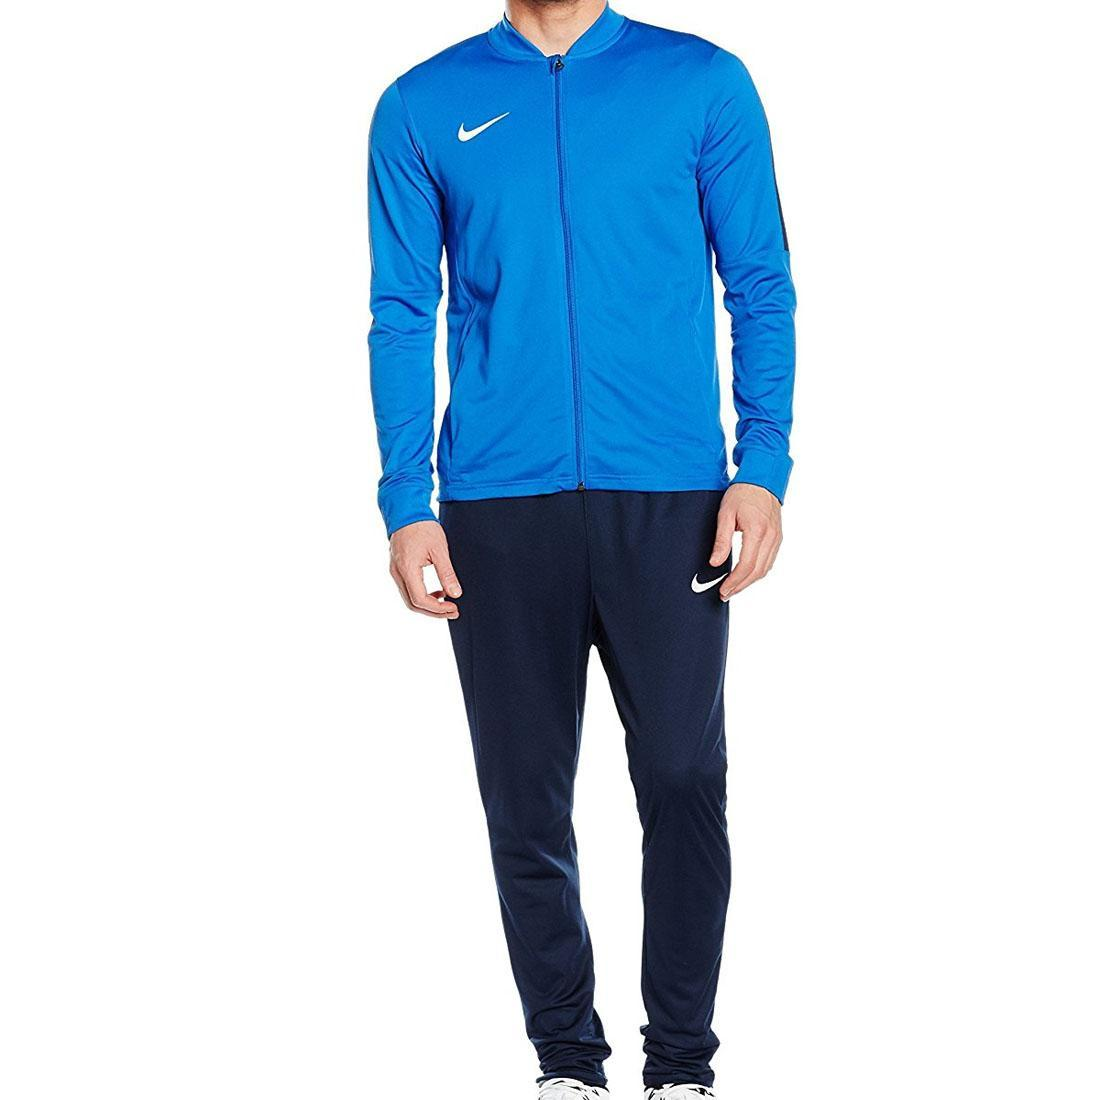 477b9028cd1d Details about Nike Mens Academy 16 Polyester Dri Fit Navy Blue Football Warm  Up Full Tracksuit